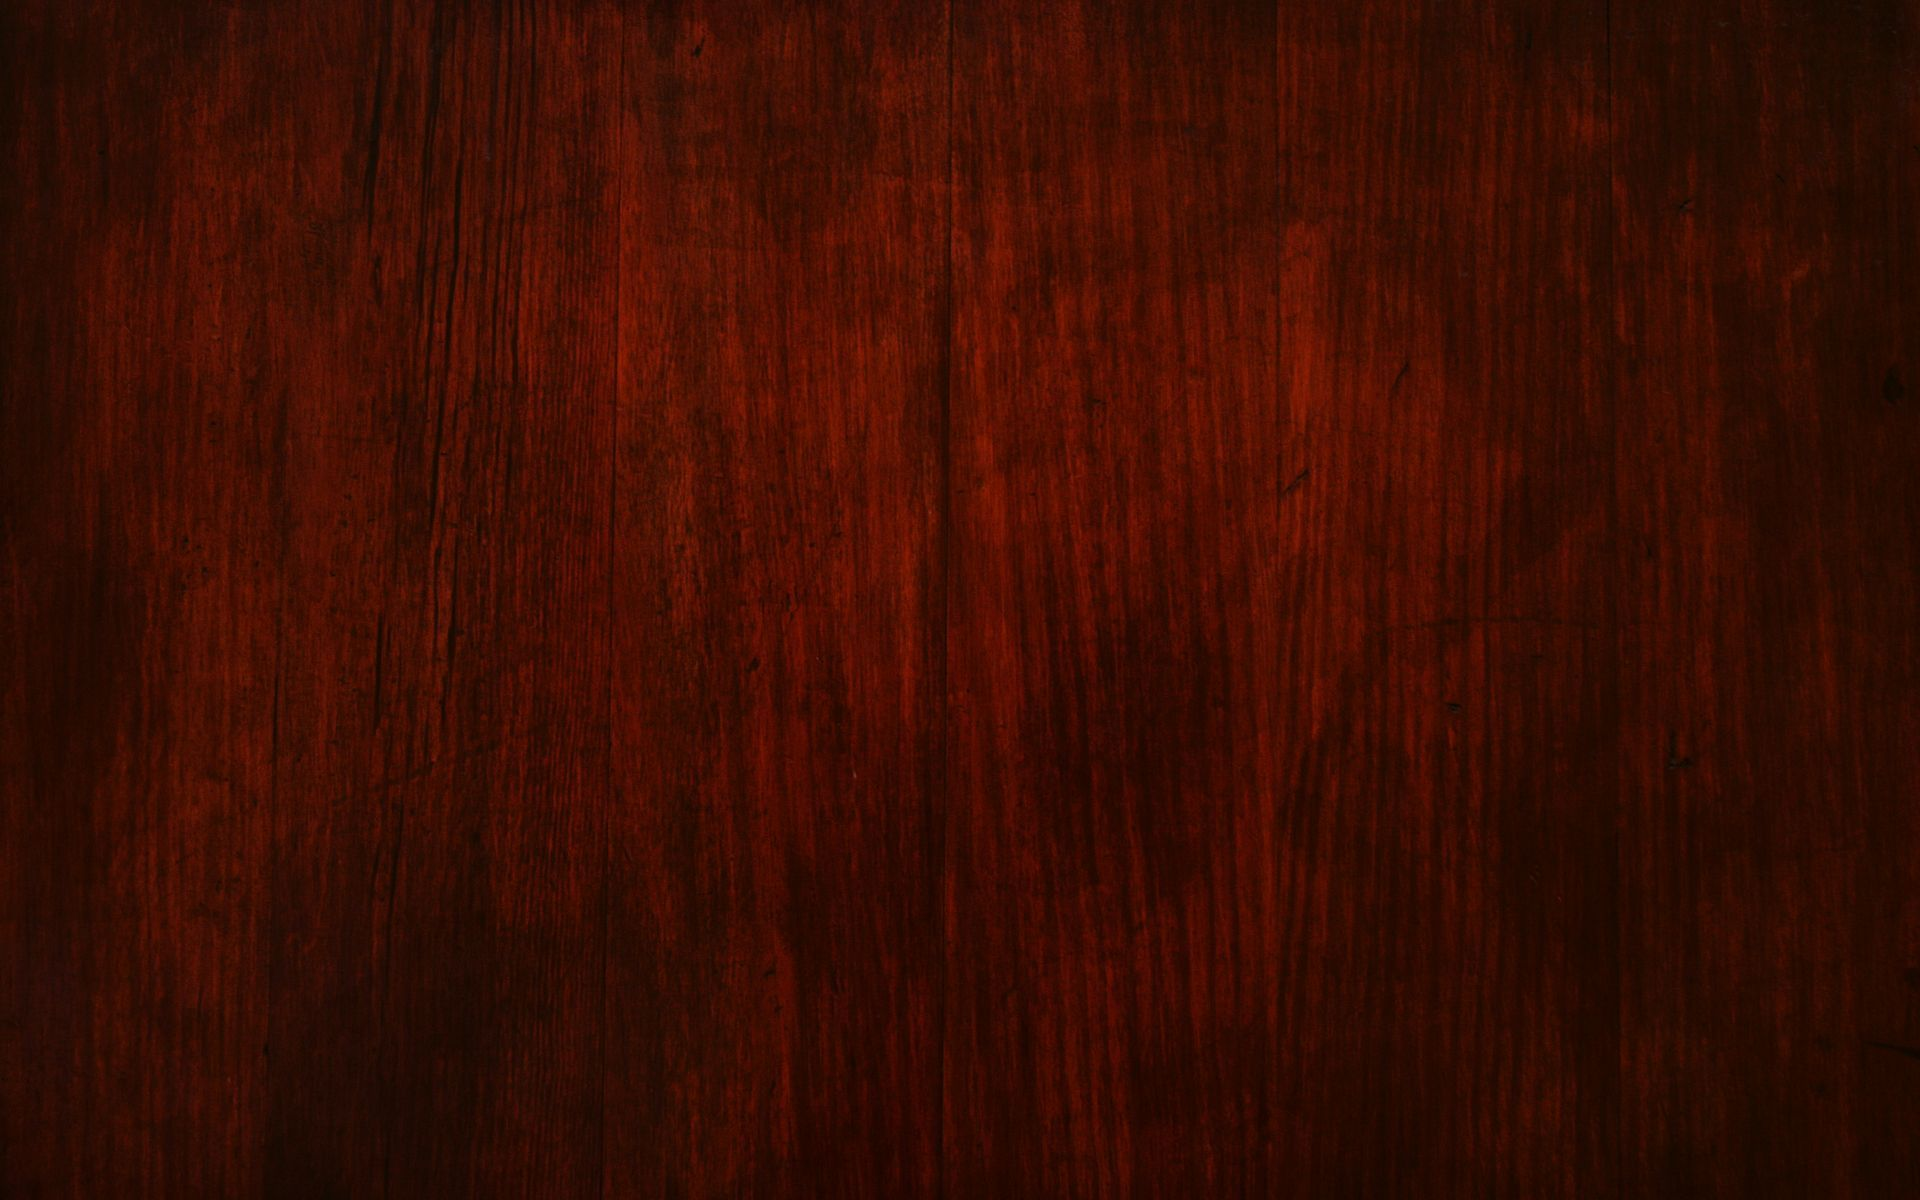 50+ Mahogany Wood Wallpapers - Descarga